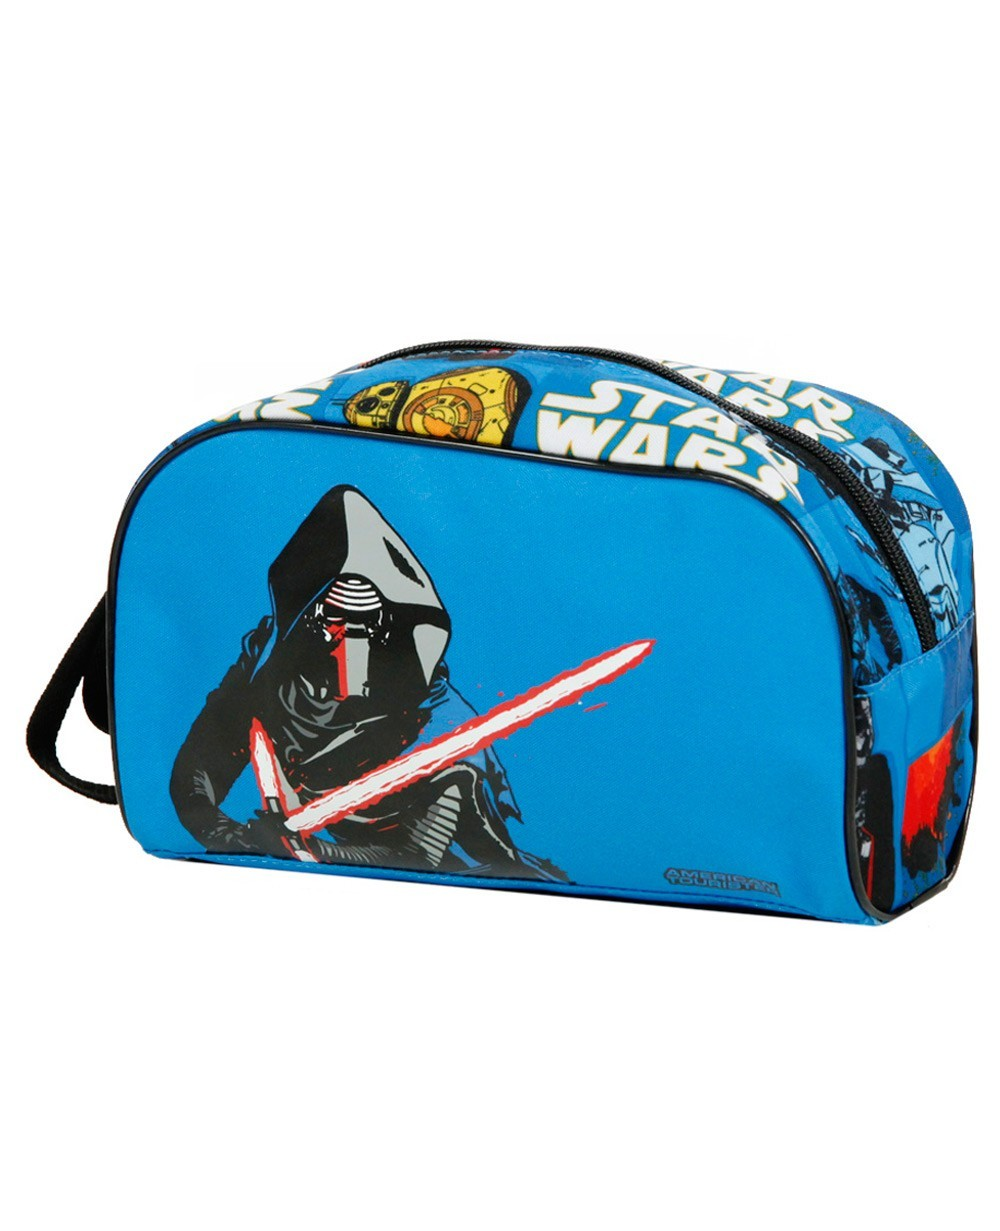 American Tourister Star Wars Saga Neceser Azul Pacífico (Foto )